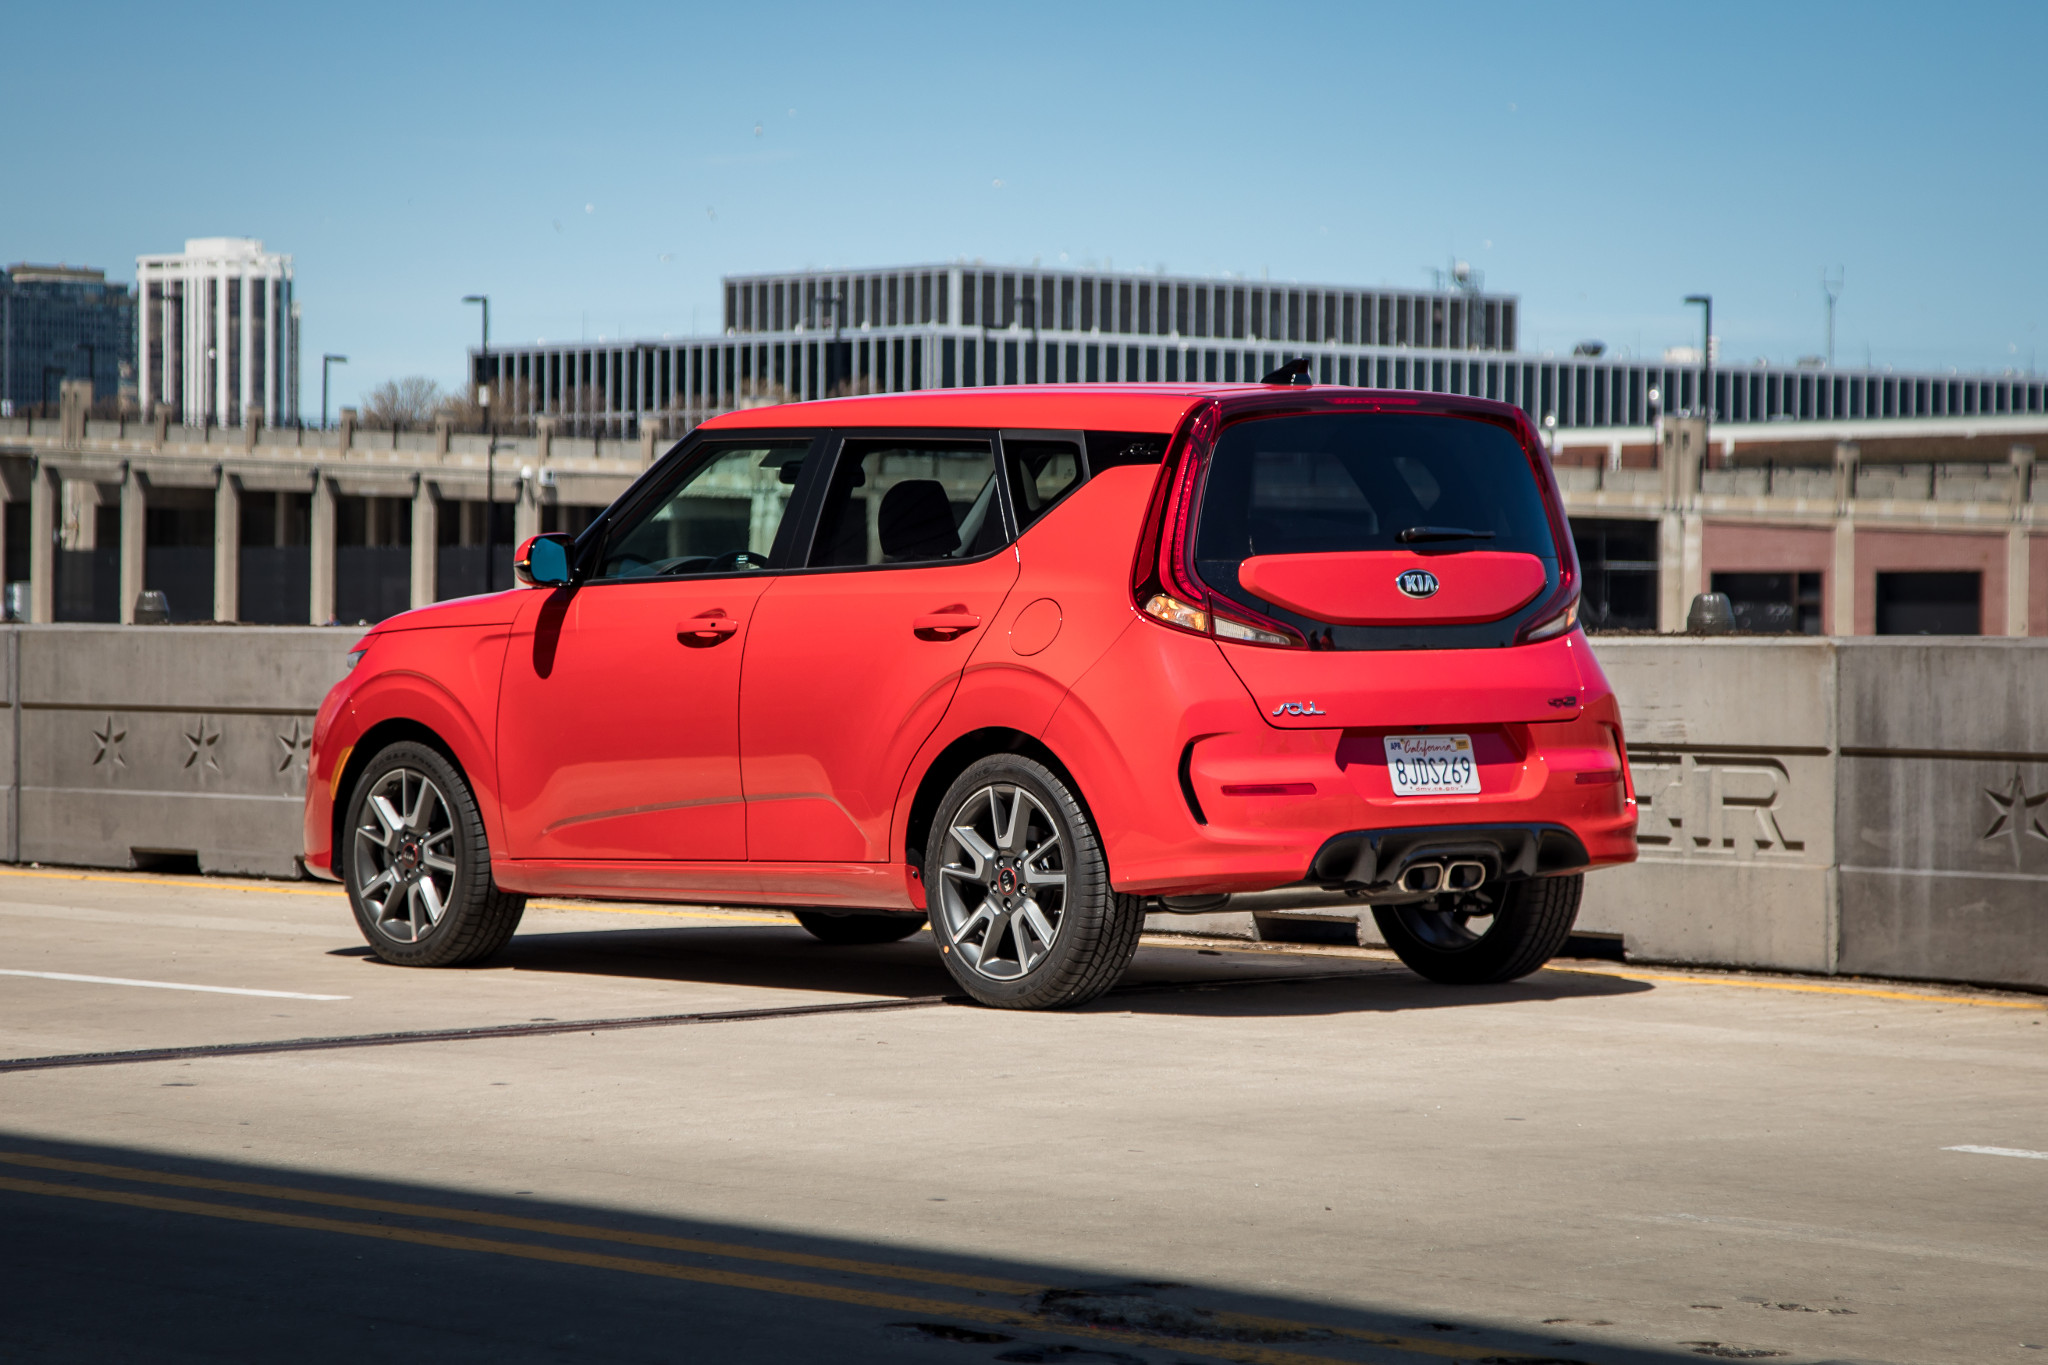 04-kia-soul-2020-angle--exterior--rear--red--urban.jpg